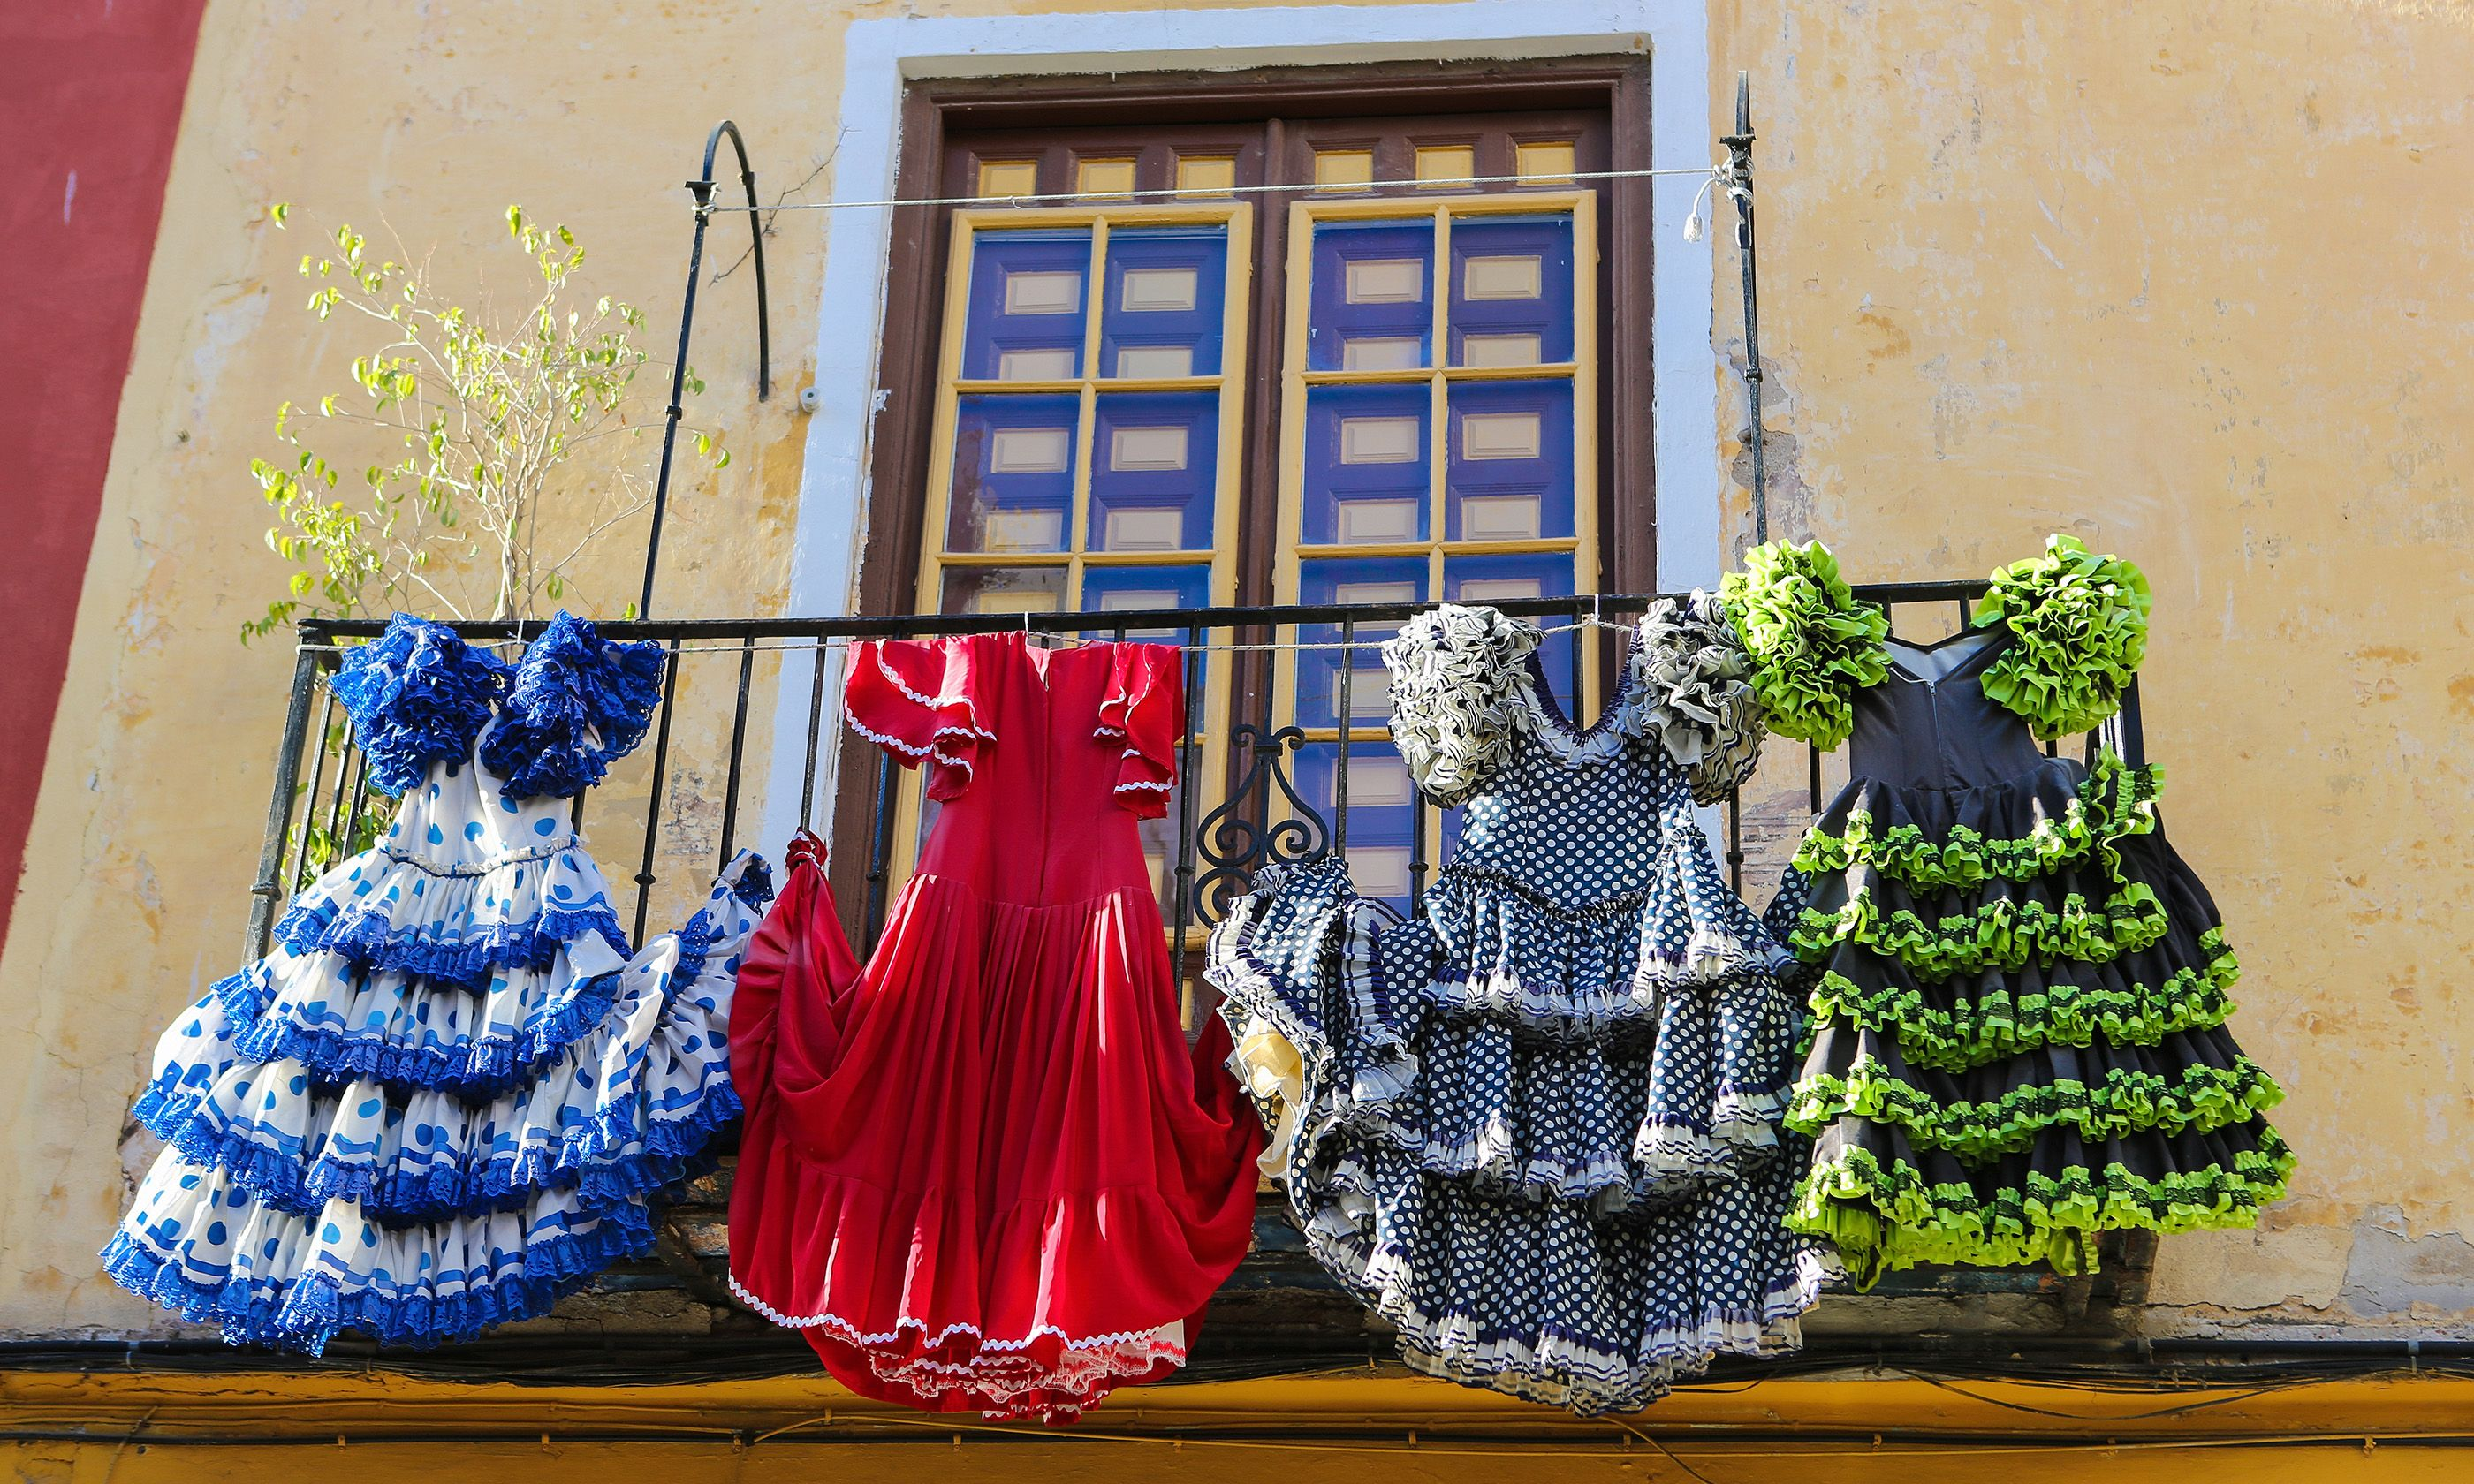 Tradiitional flamenco dresses. From Shutterstock.com